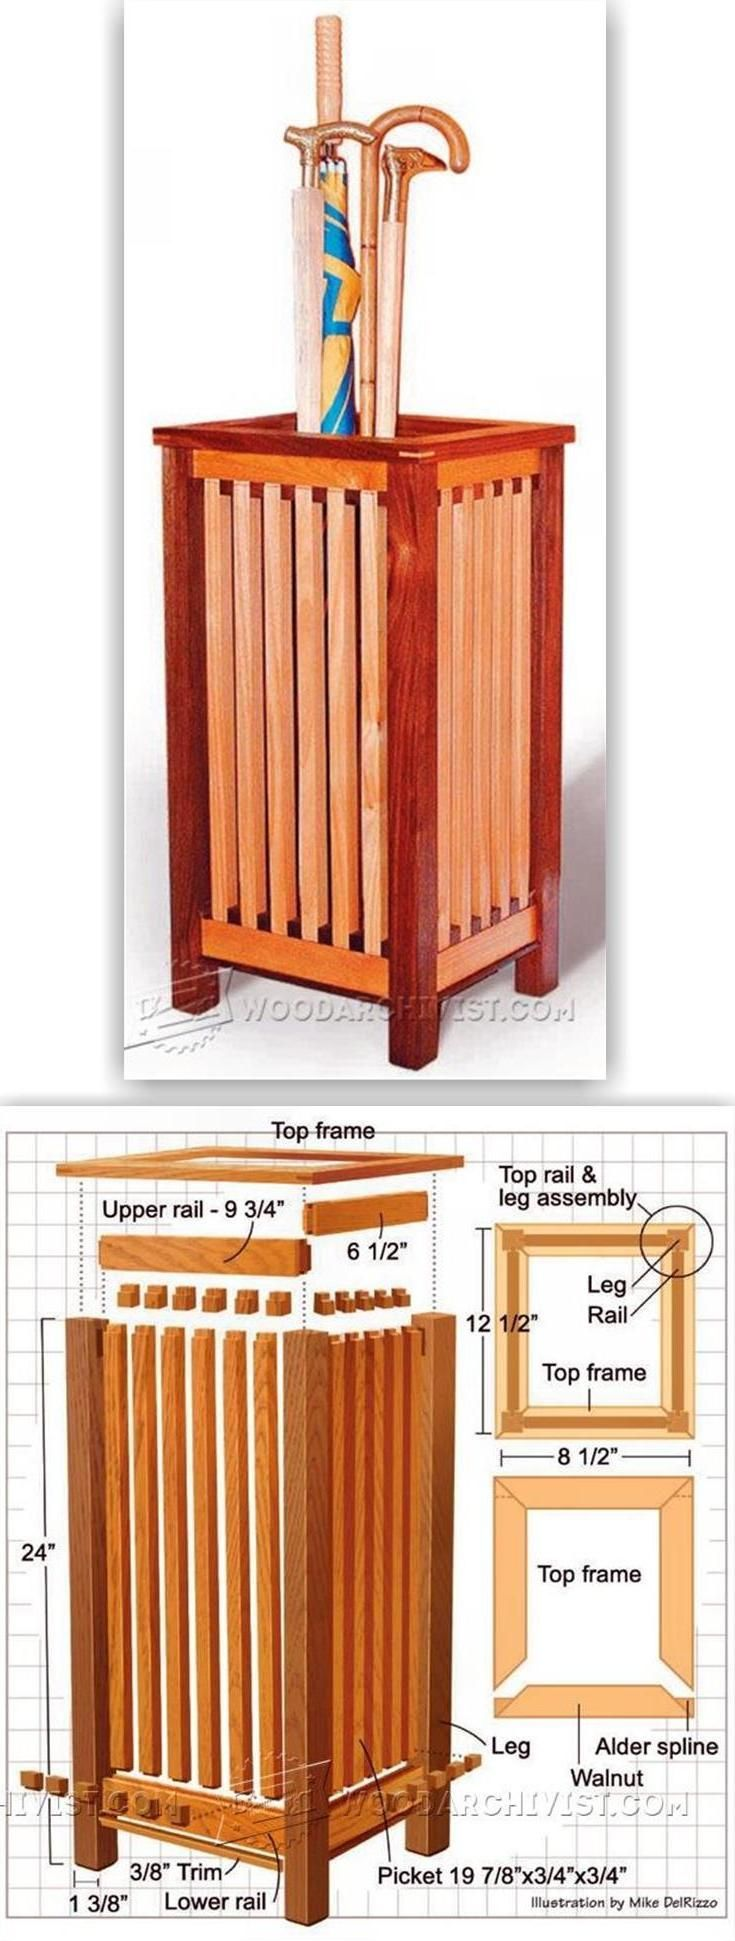 Walking Stick Stand Plans - Furniture Plans and Projects | WoodArchivist.com